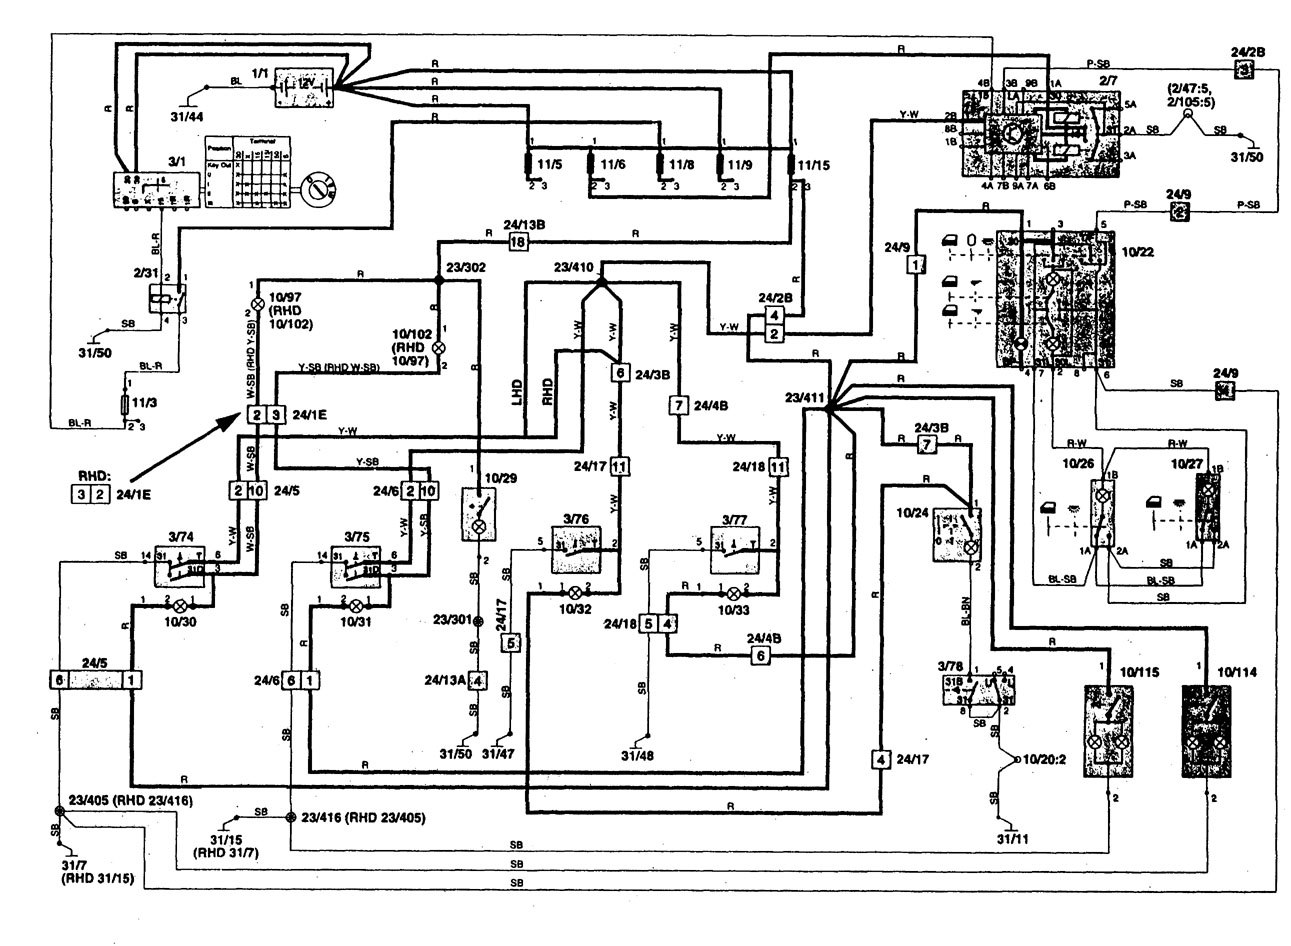 hight resolution of 1995 acura integra wiring diagram lighting auto electrical wiring volvo 850 1997 wiring diagrams